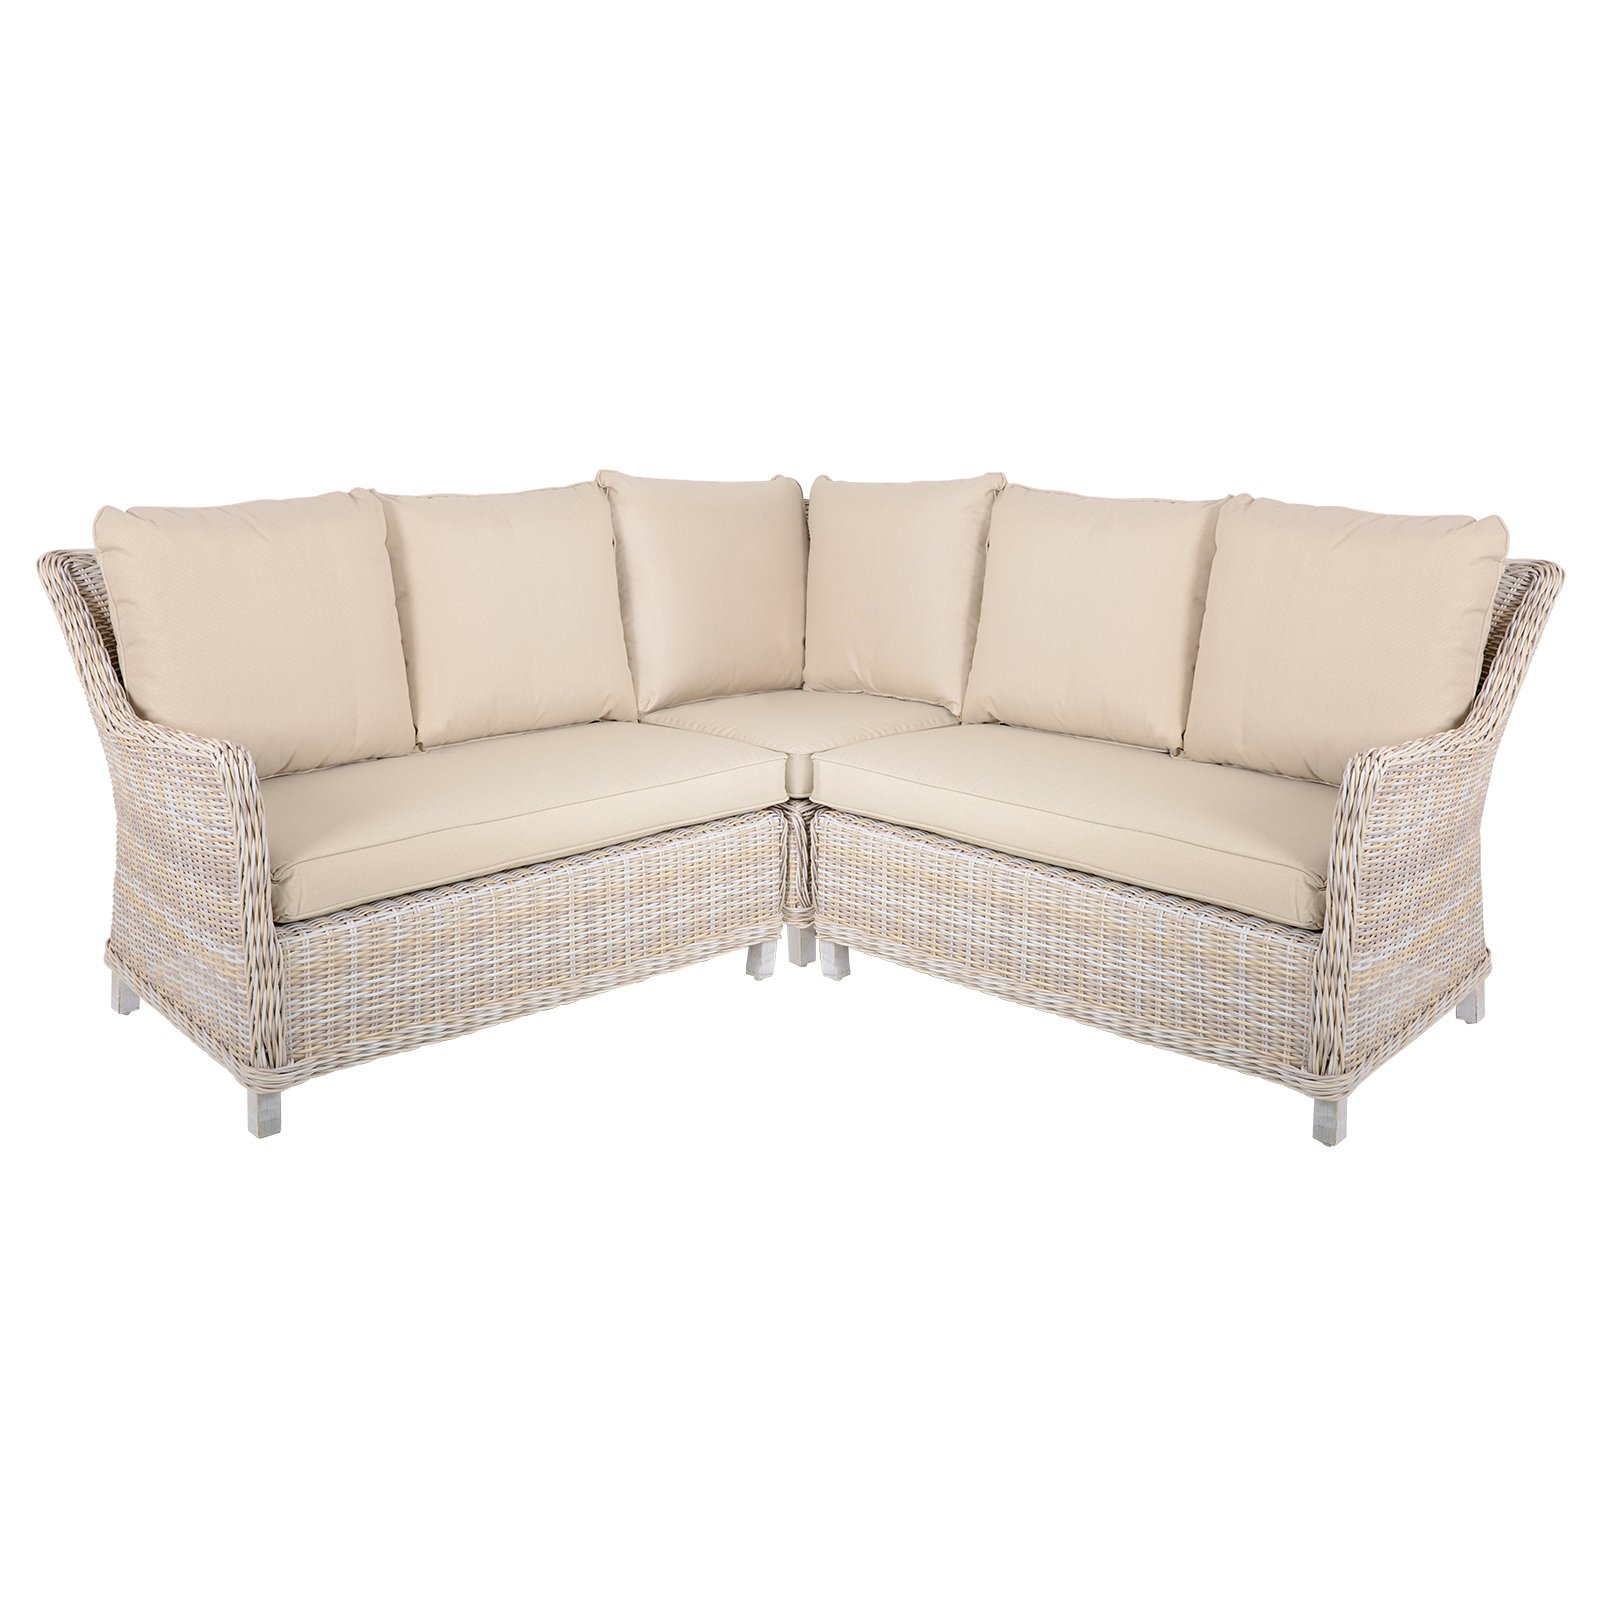 corner sofas for conservatories italian leather in bangalore barbados 4 piece rattan wicker garden conservatory